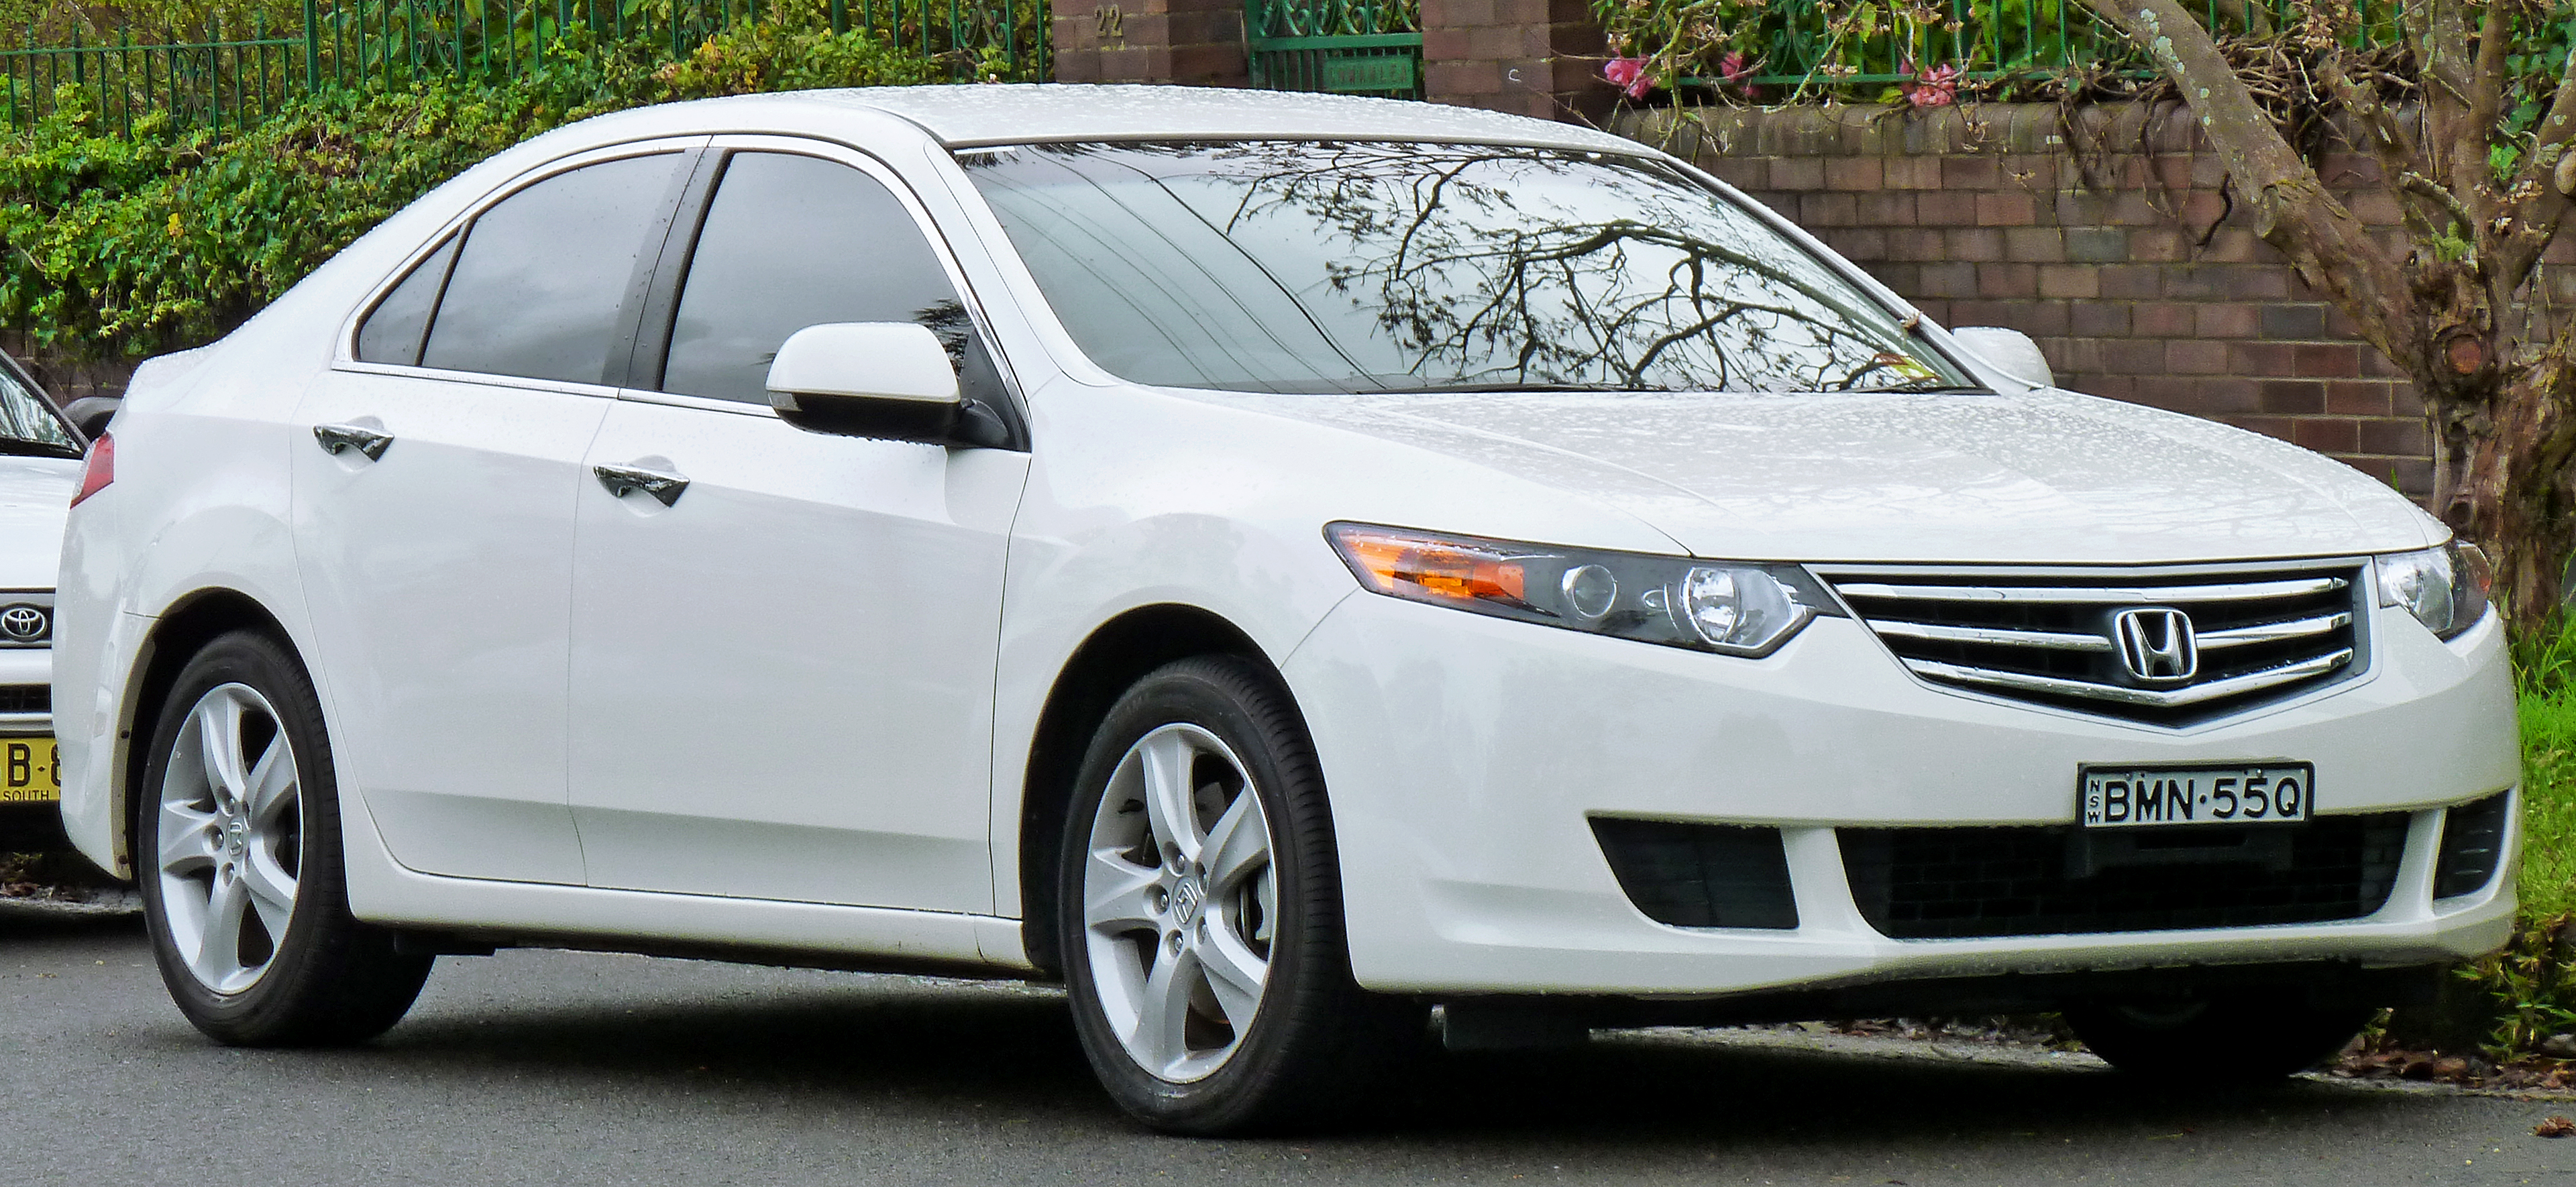 2012 tourer s type 8th gen accord typeaccord. Black Bedroom Furniture Sets. Home Design Ideas